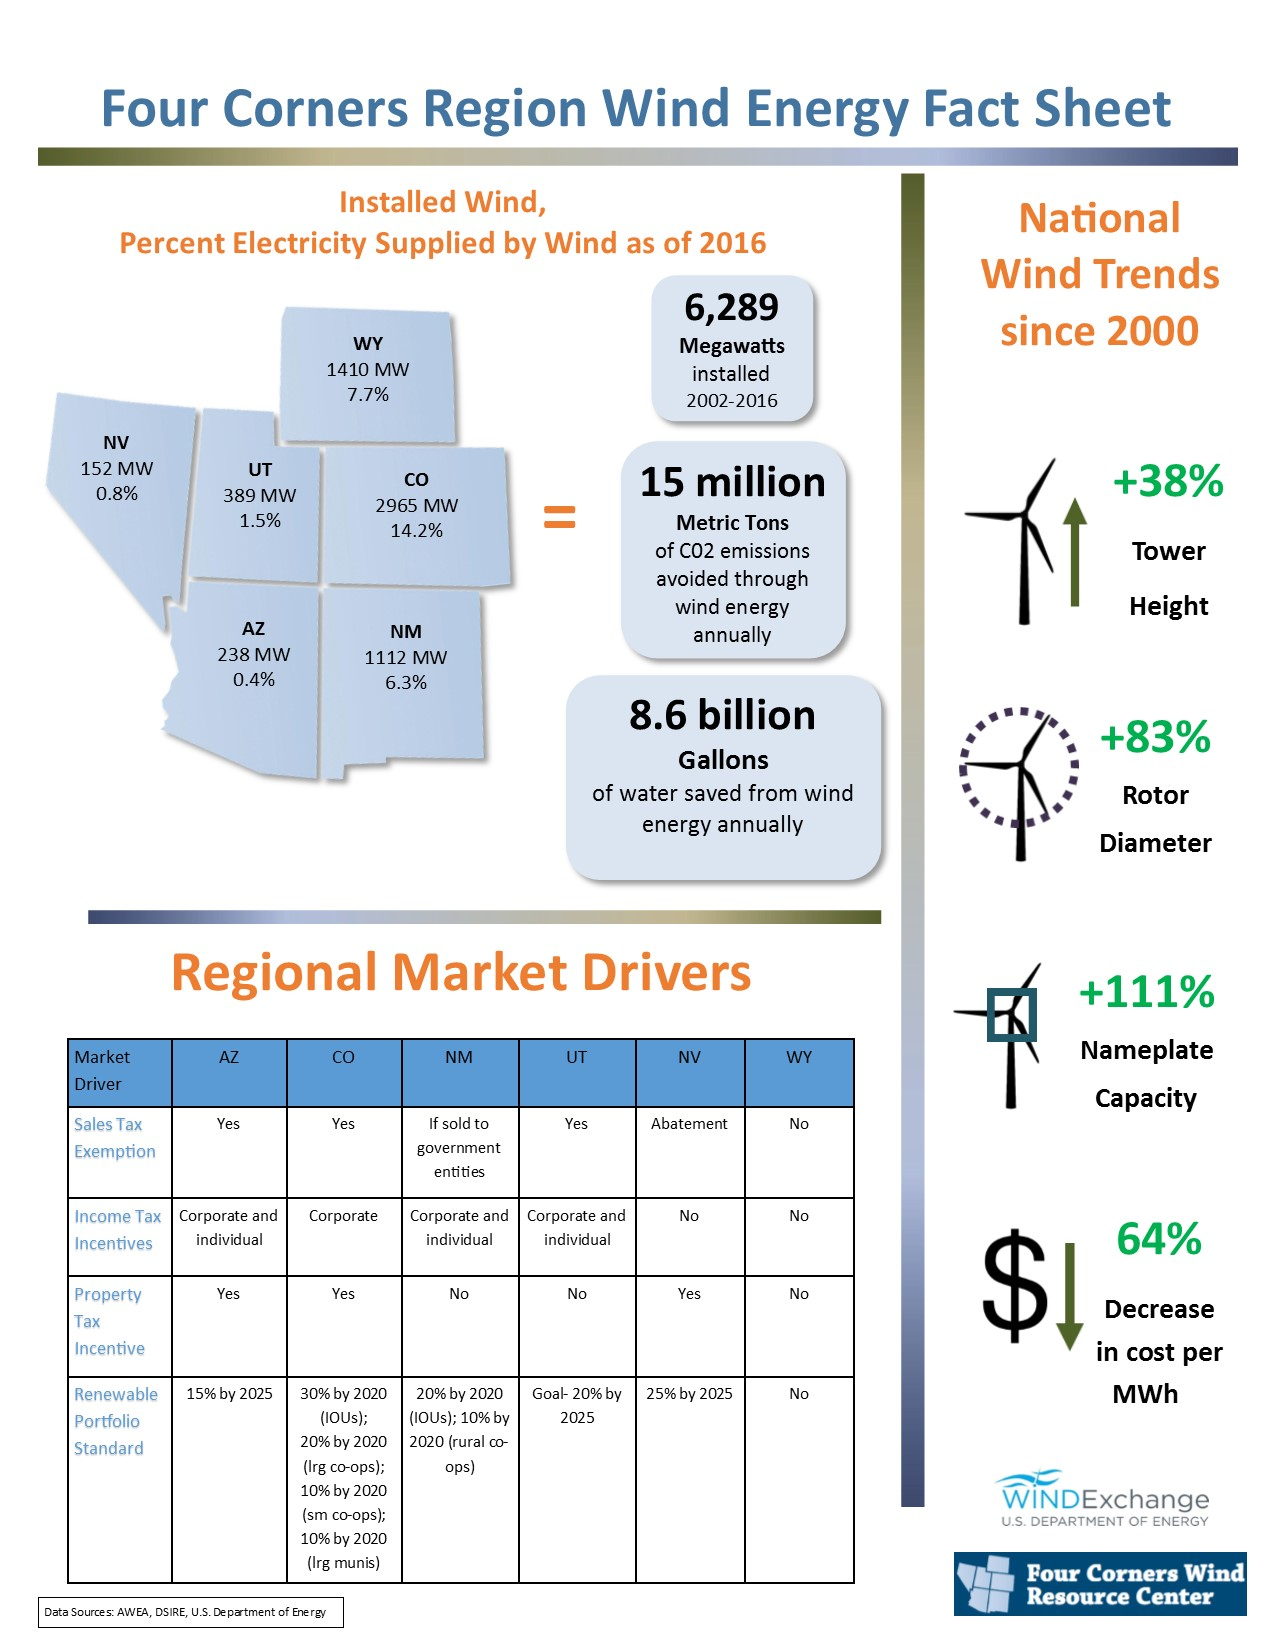 Regional_Wind_Fact_Sheet_5_27_16.jpg